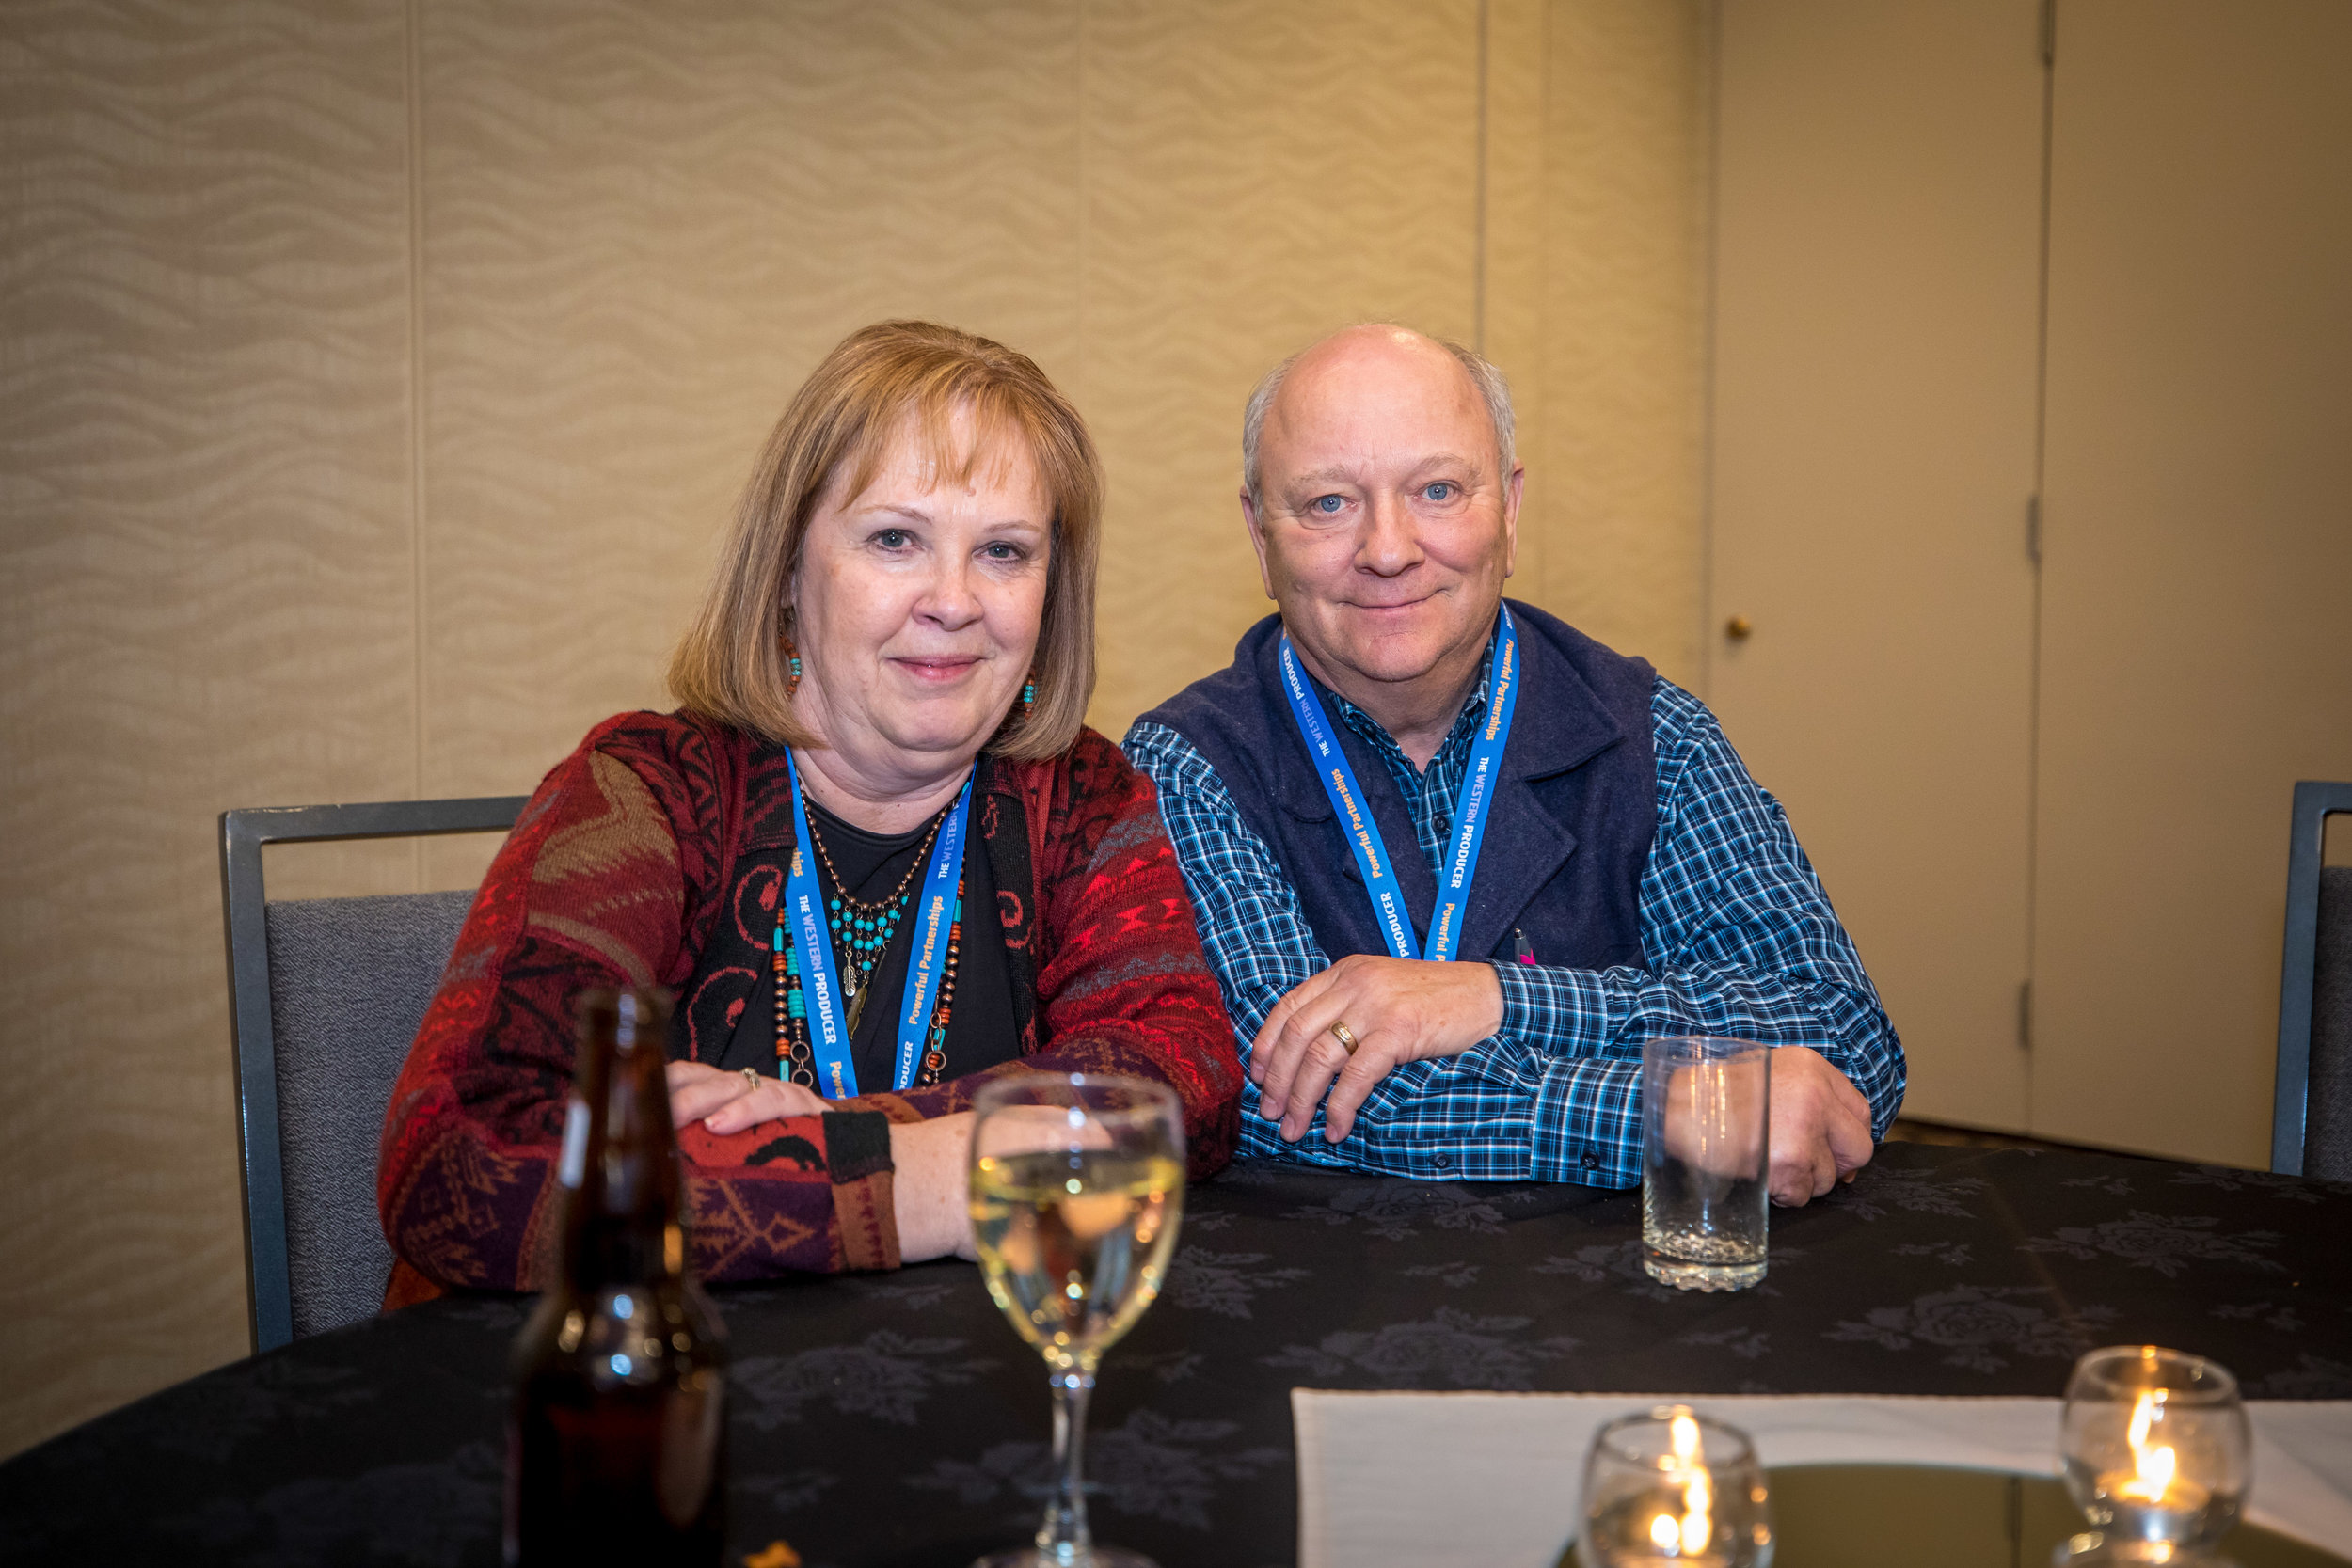 2019 01-31 Alberta Auctioneer Convention Day 01 - Calgary 07.jpg